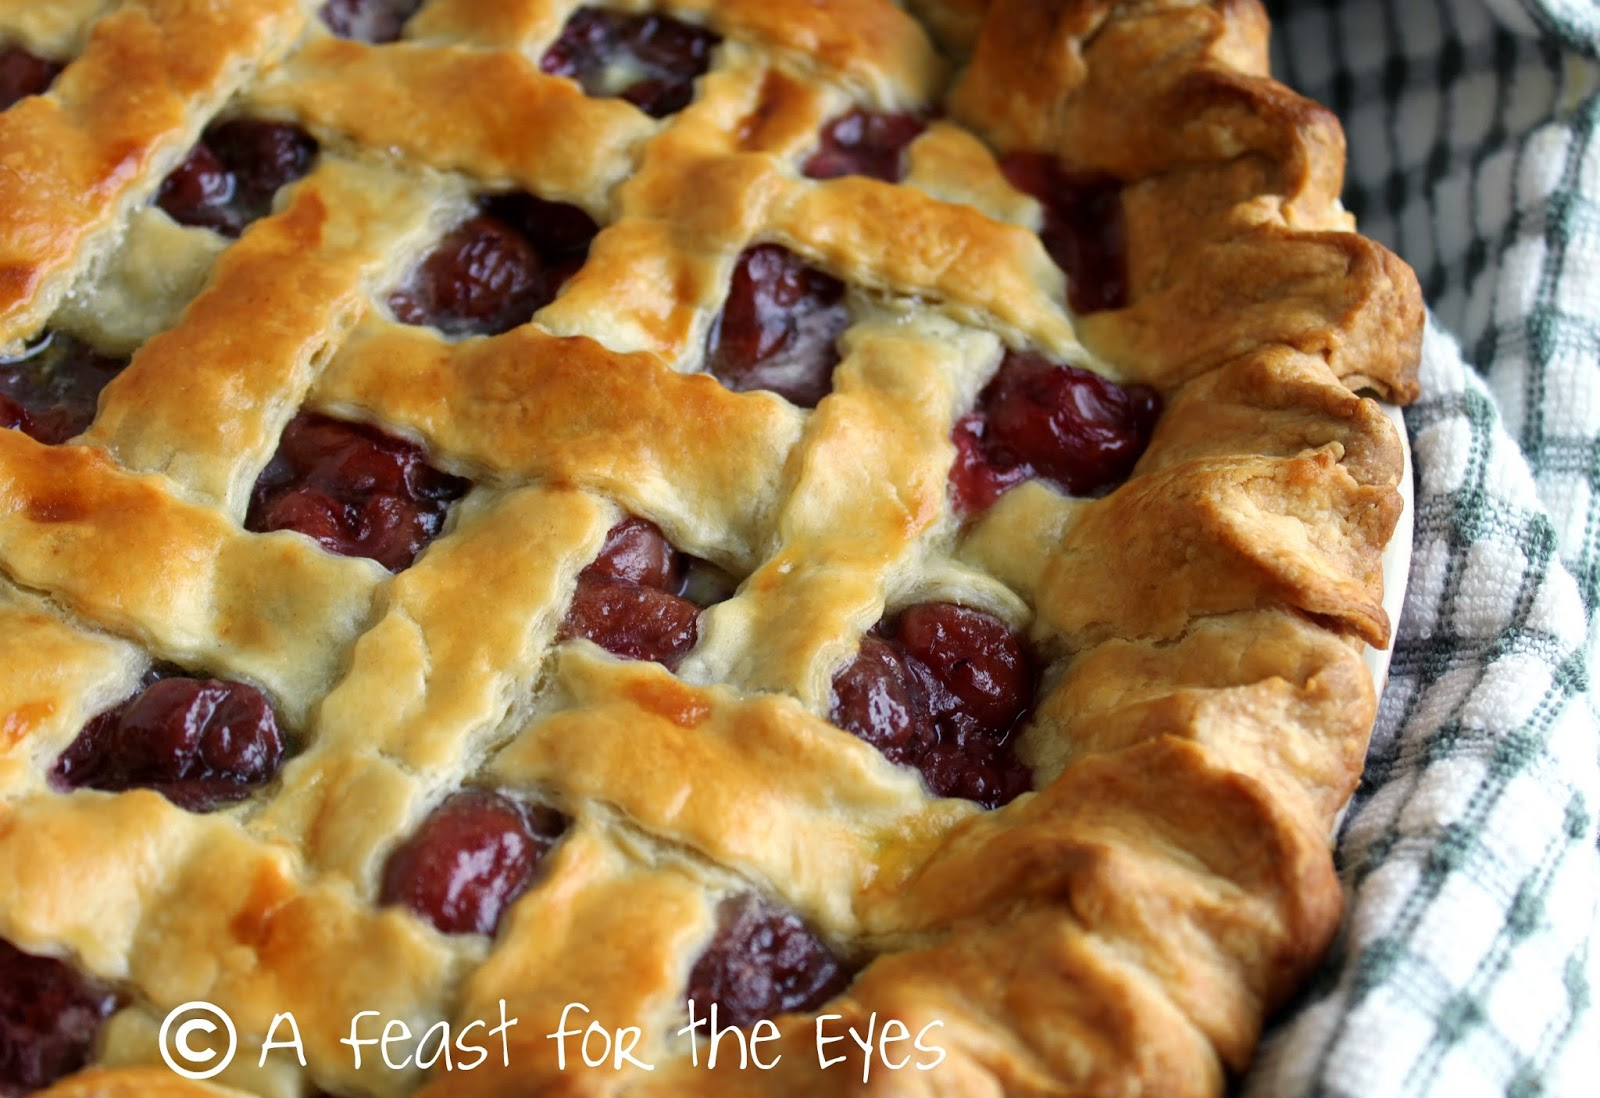 Feast for the Eyes: Incredible Cherry Pie!